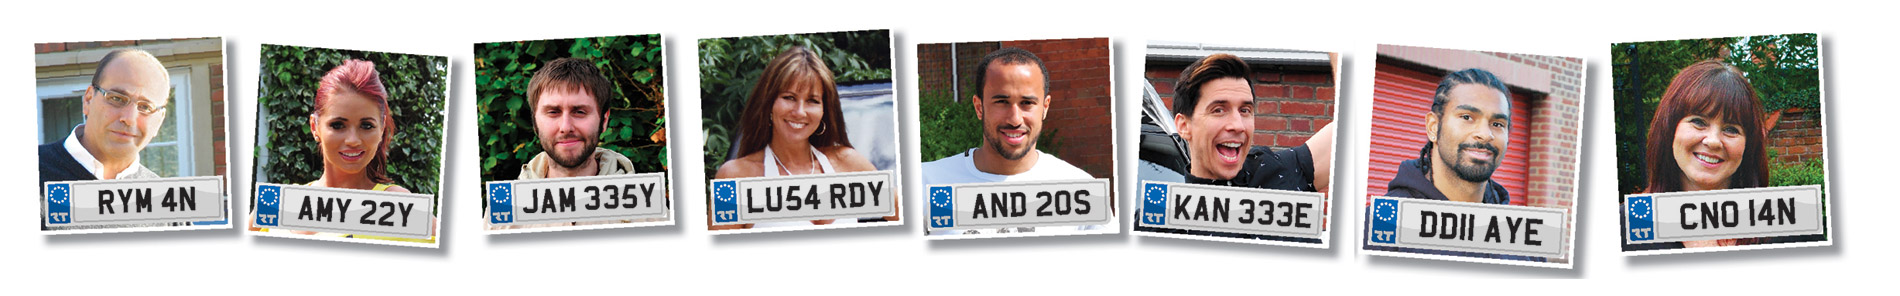 The celebrities that bought name numberplates from Regtransfers